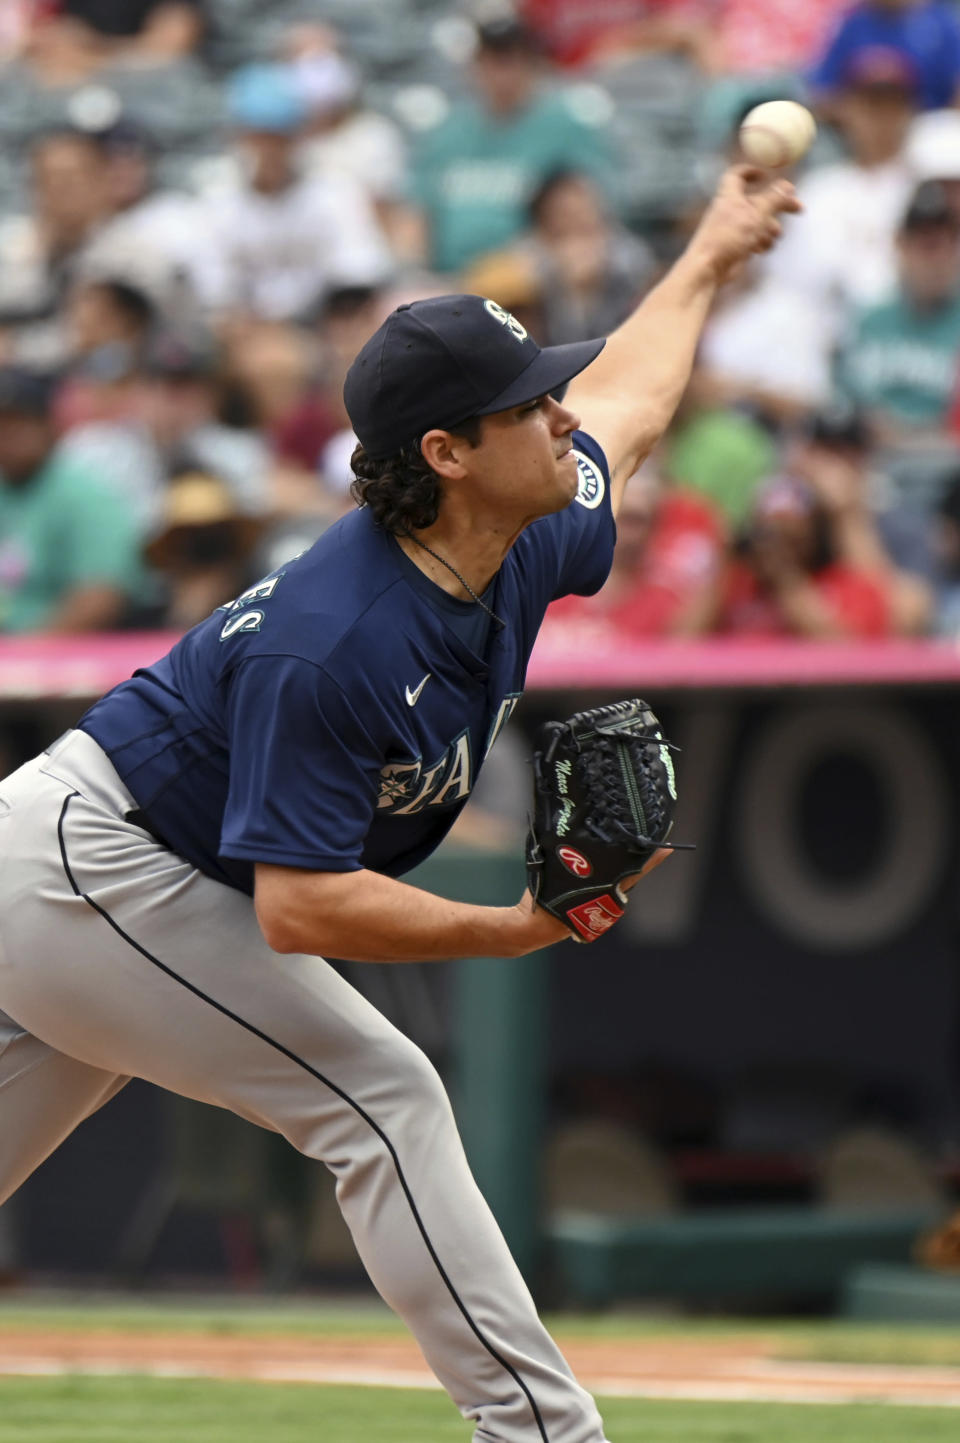 Seattle Mariners pitcher Marco Gonzales throws to home plate during the first inning of a baseball game against the Los Angeles Angels, Sunday, Sept. 26, 2021, in Anaheim, Calif. (AP Photo/Michael Owen Baker)